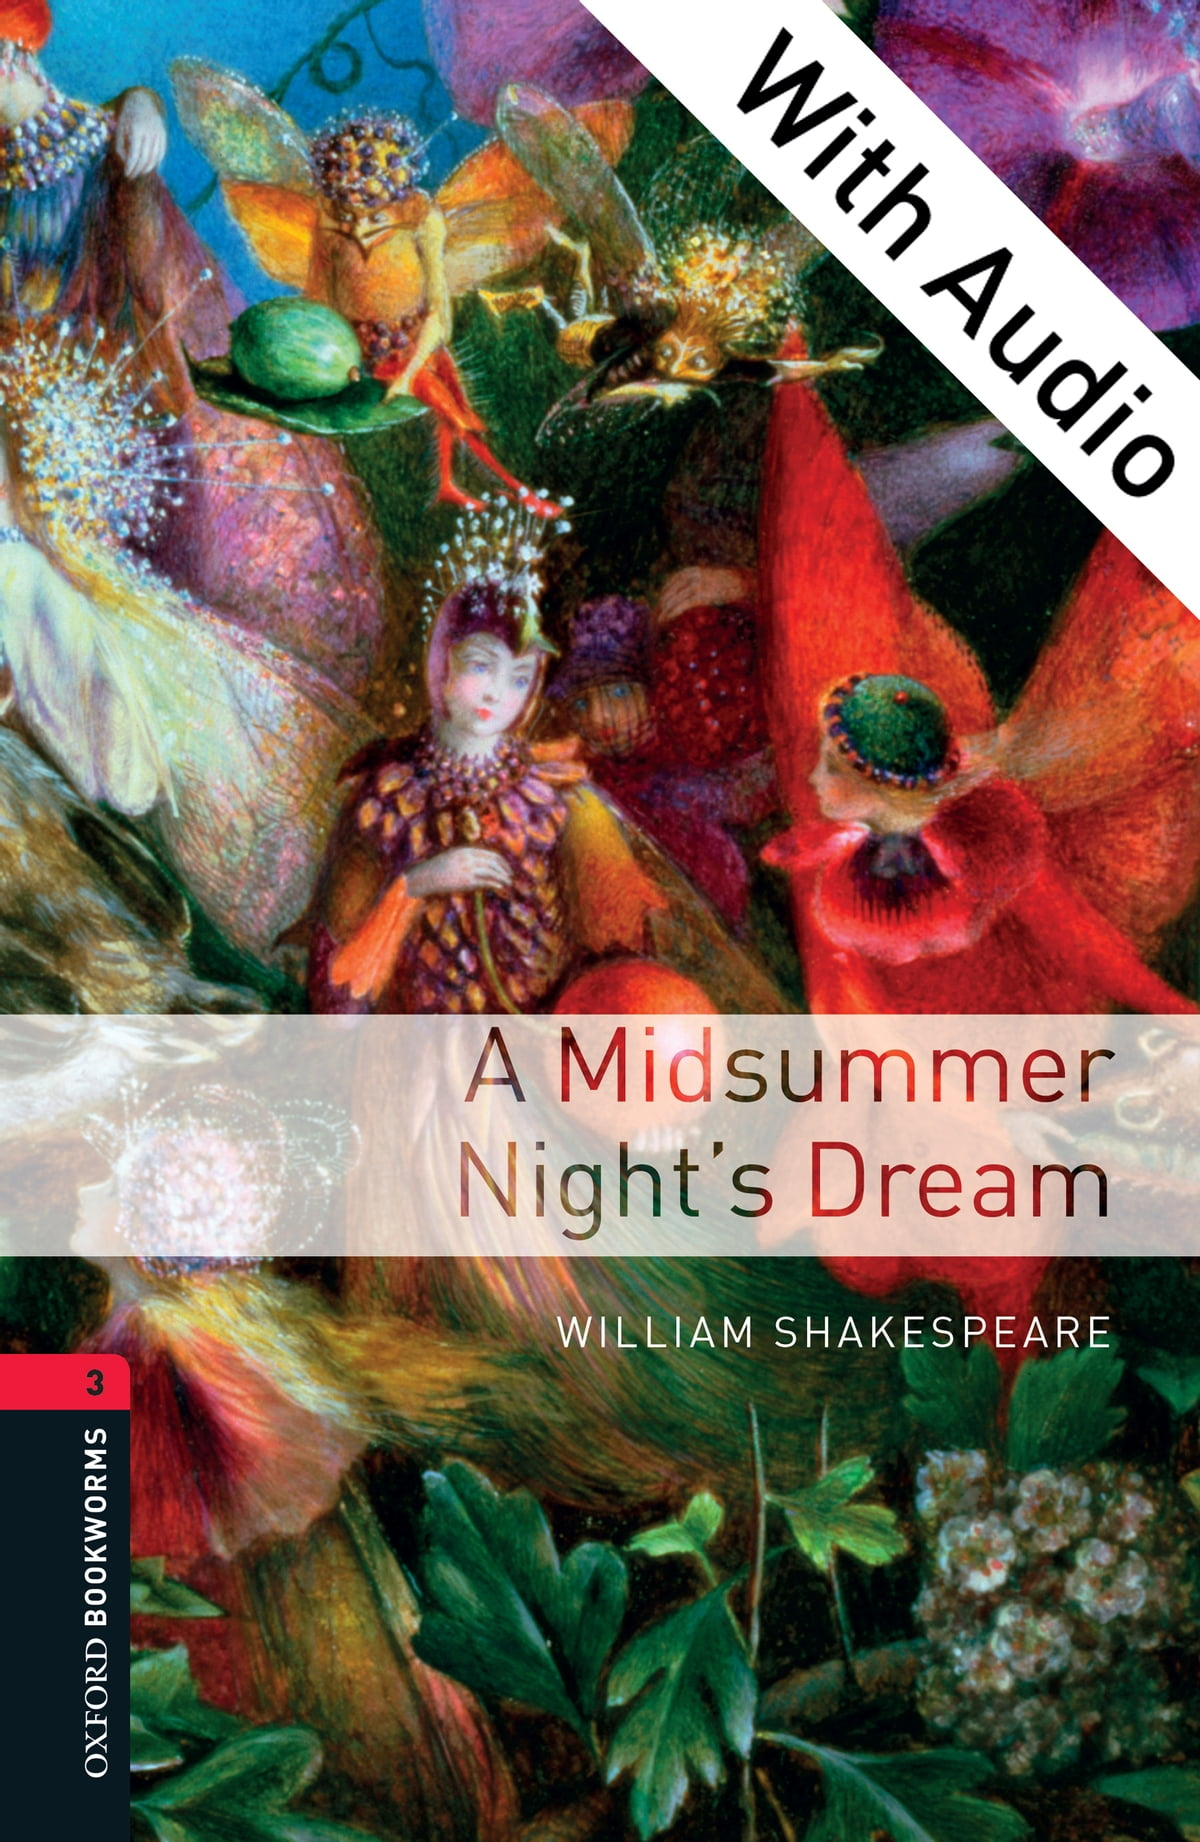 an analysis of the midsummer nights dream by william shakespeare A typical five act play by william shakespeare, a midsummer night's dream is a fantastical romantic comedy with fairies and multiple plot lines it begins by introducing the various characters and their situations first, there are theseus, the duke, and his fiancé hippolyta, who are excited to be.